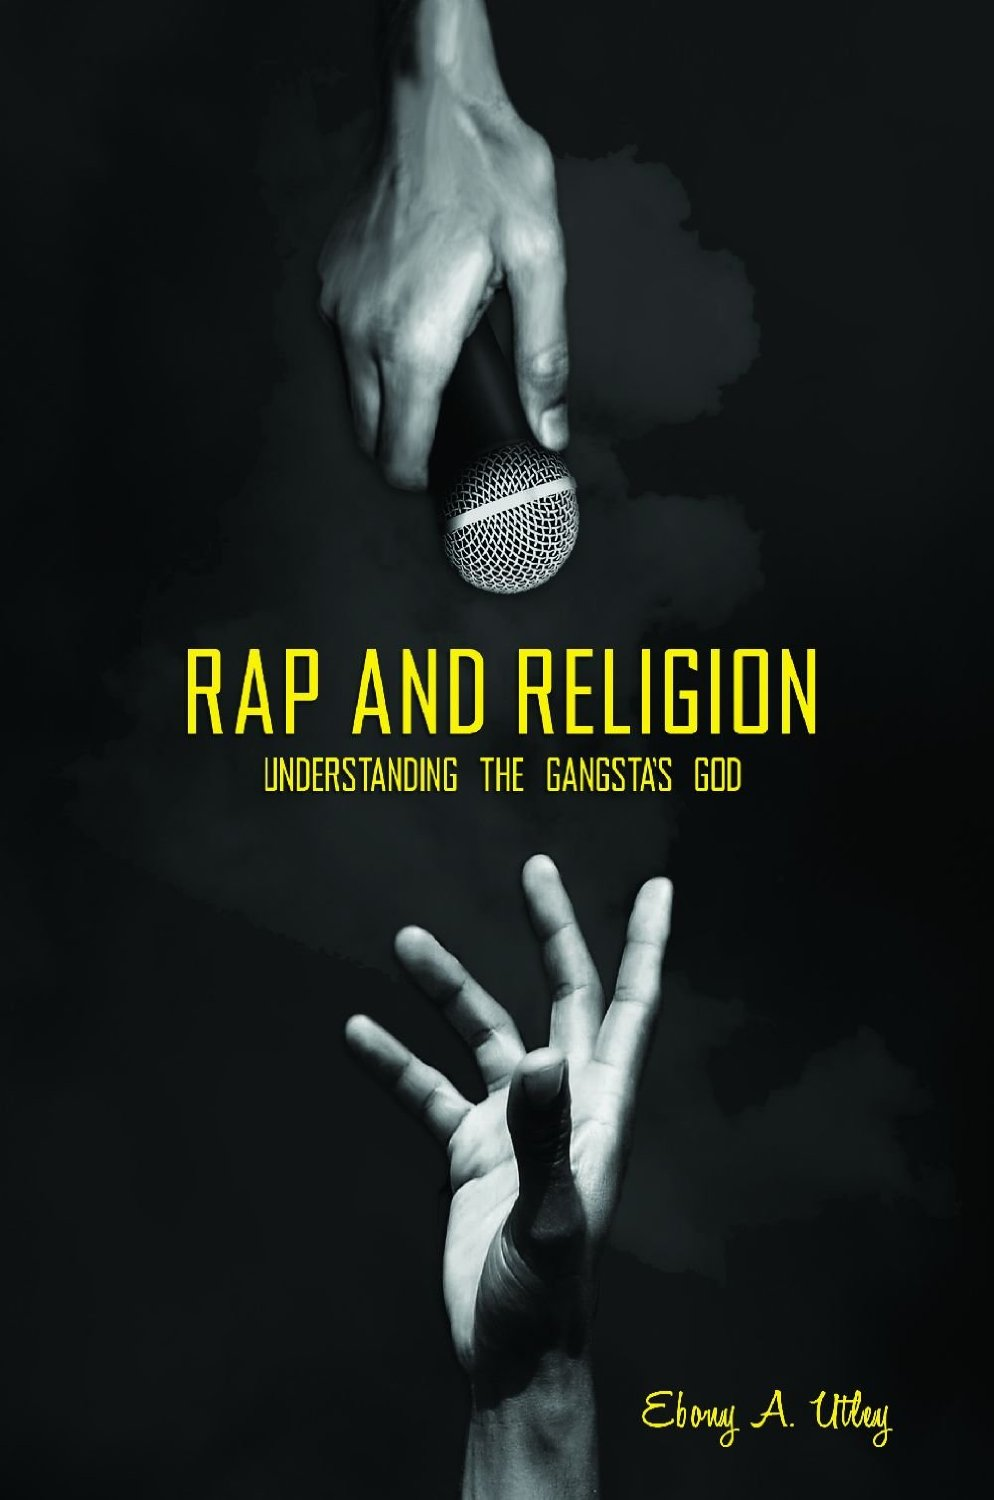 "soulbrotherv2 :        Rap and Religion: Understanding the Gangsta's God    by Ebony A. Utley    Why is the battle between good and evil a recurring theme in rap lyrics? What role does the devil play in hip hop? What exactly does it mean when rappers wear a diamond-encrusted ""Jesus"" around their necks? Why do rappers acknowledge God during award shows and frequently include prayers in their albums?  Rap and Religion: Understanding the Gangsta's God  tackles a sensitive and controversial topic: the juxtaposition—and seeming hypocrisy—of references to God within hip hop culture and rap music.    This book provides a focused examination of the intersection of God and religion with hip hop and rap music. Author Ebony A. Utley, PhD, references selected rap lyrics and videos that span three decades of mainstream hip hop culture in America, representing the East Coast, the West Coast, and the South in order to account for how and why rappers talk about God. Utley also describes the complex urban environments that birthed rap music and sources interviews, award acceptance speeches, magazine and website content, and liner notes to further explain how God became entrenched in hip hop.  [    book link   ]"